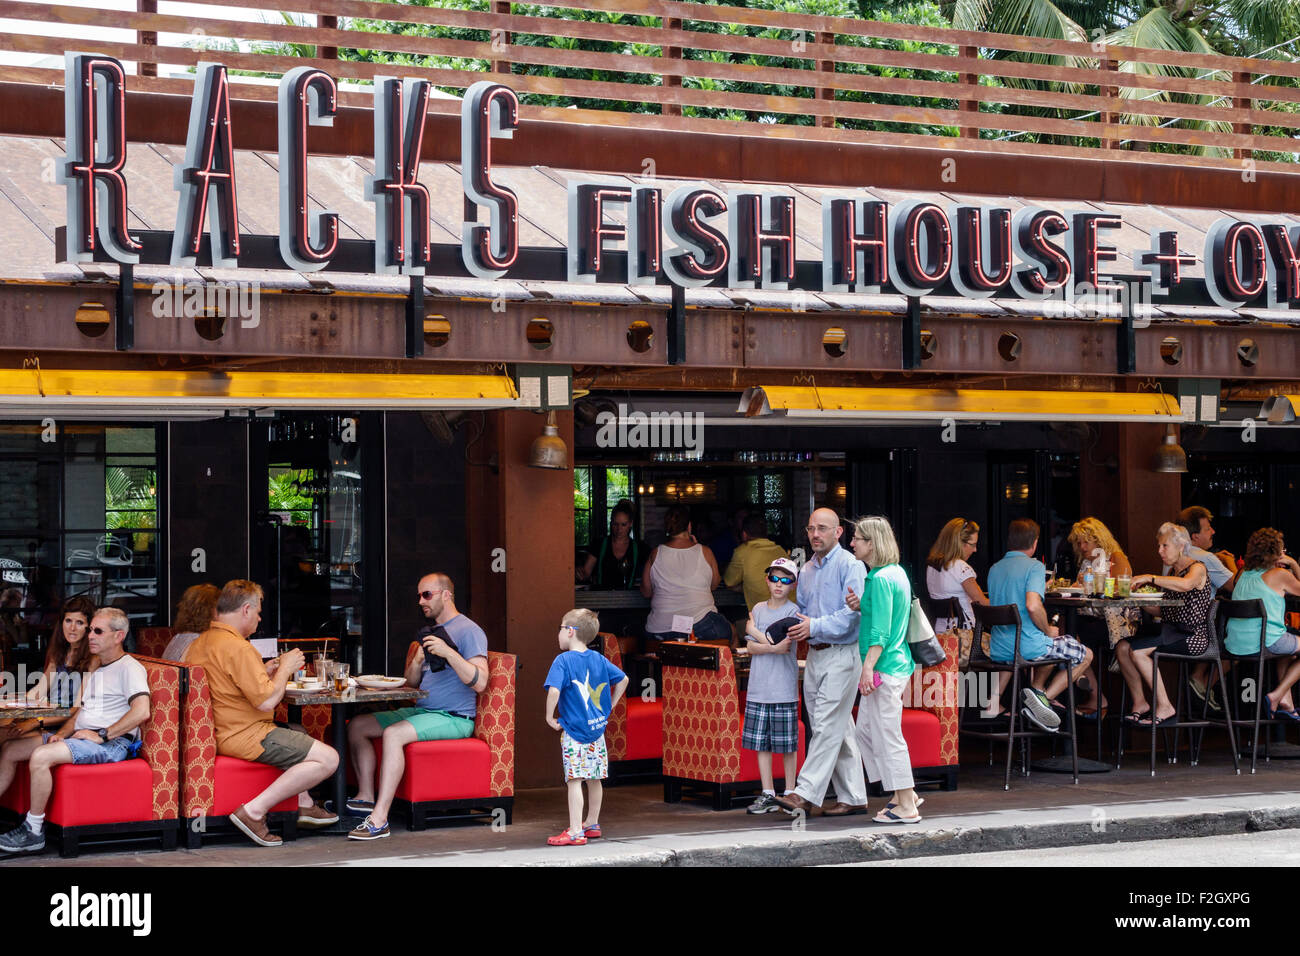 Florida delray beach east atlantic avenue racks fish house for Racks fish house